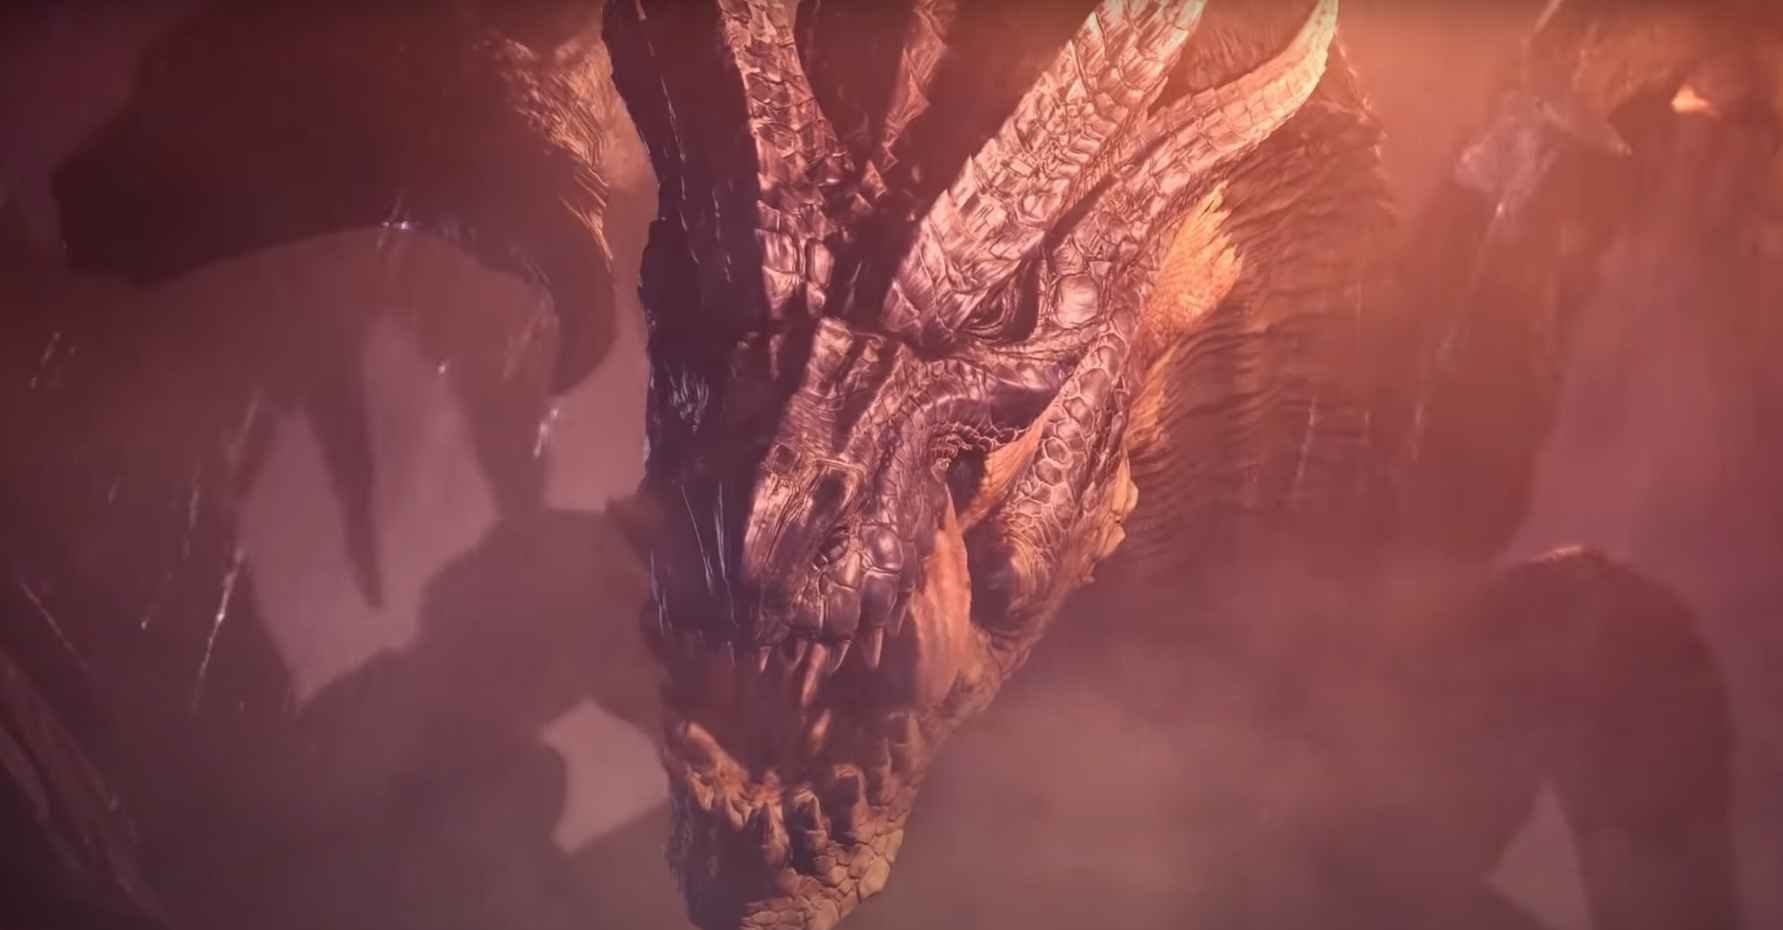 Tráiler de la quinta expansión de Monster Hunter World Iceborne